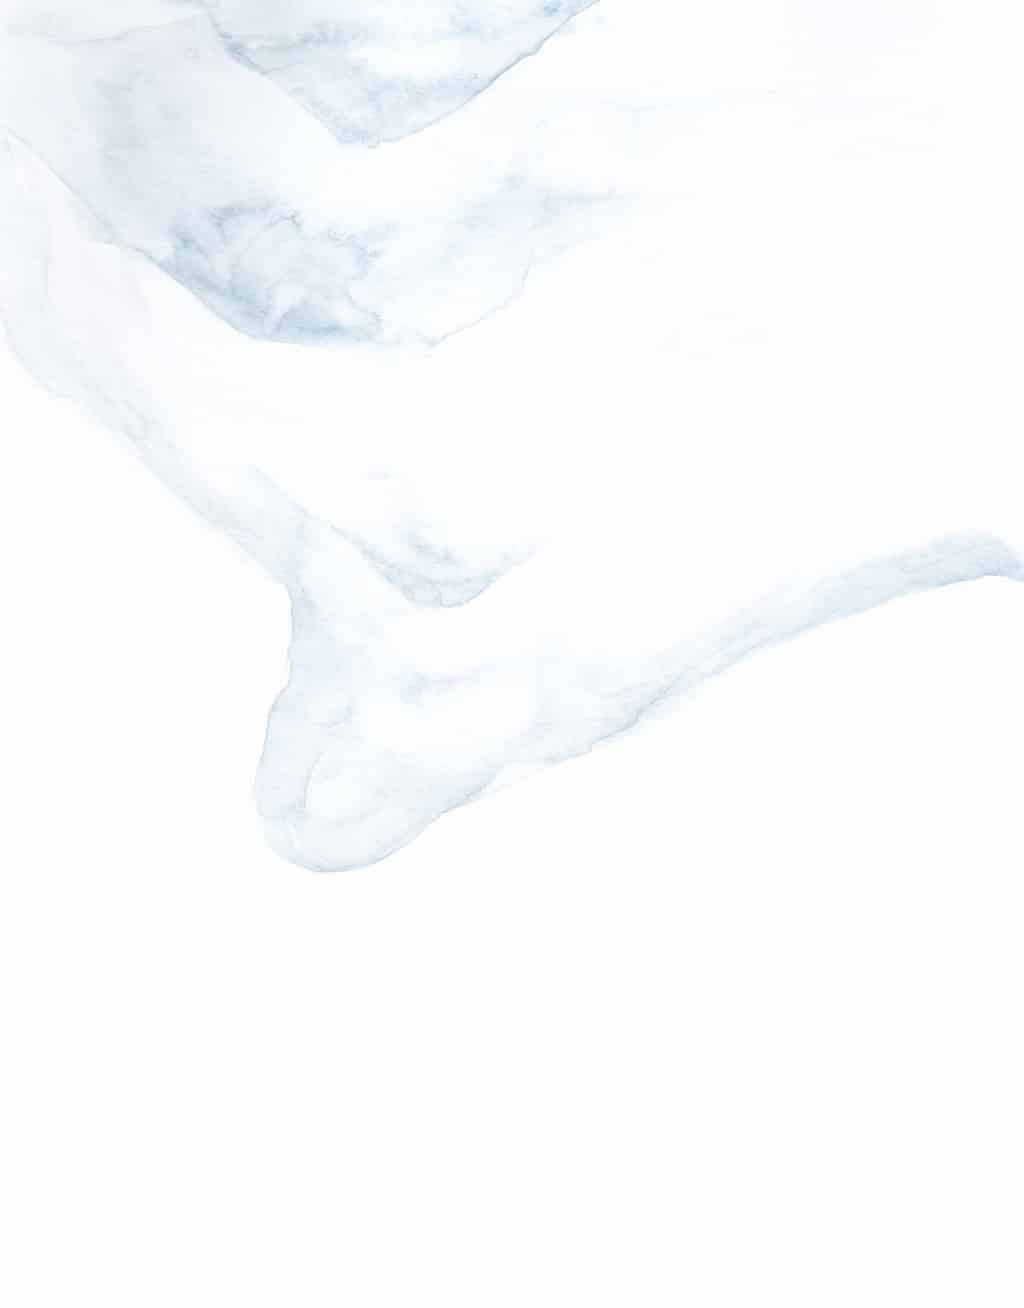 Watercolour challenge: snow